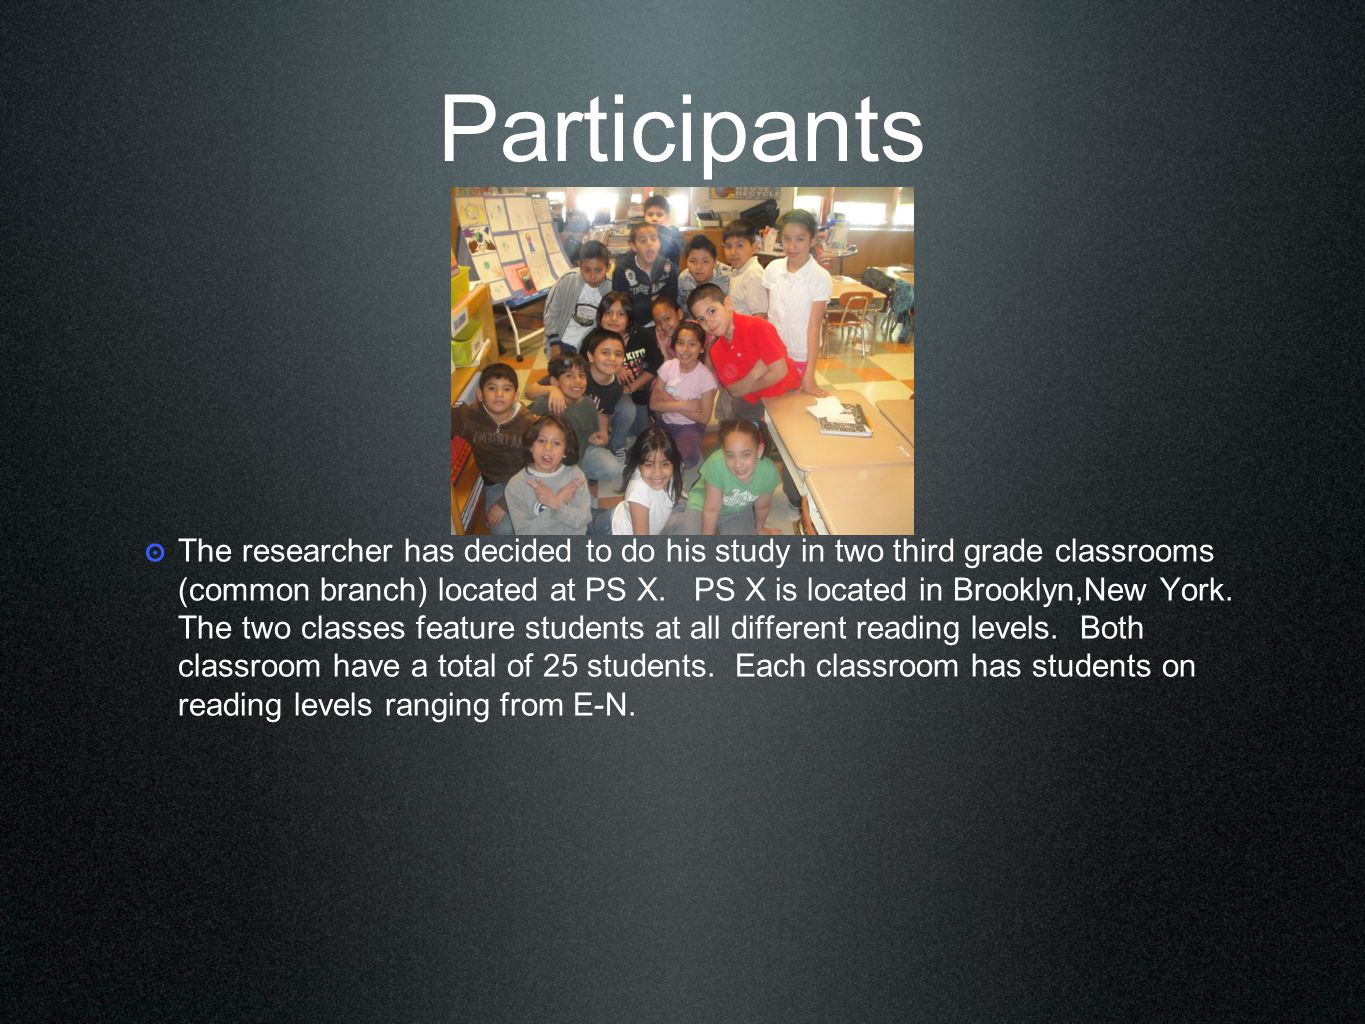 Participants ๏ The researcher has decided to do his study in two third grade classrooms (common branch) located at PS X.